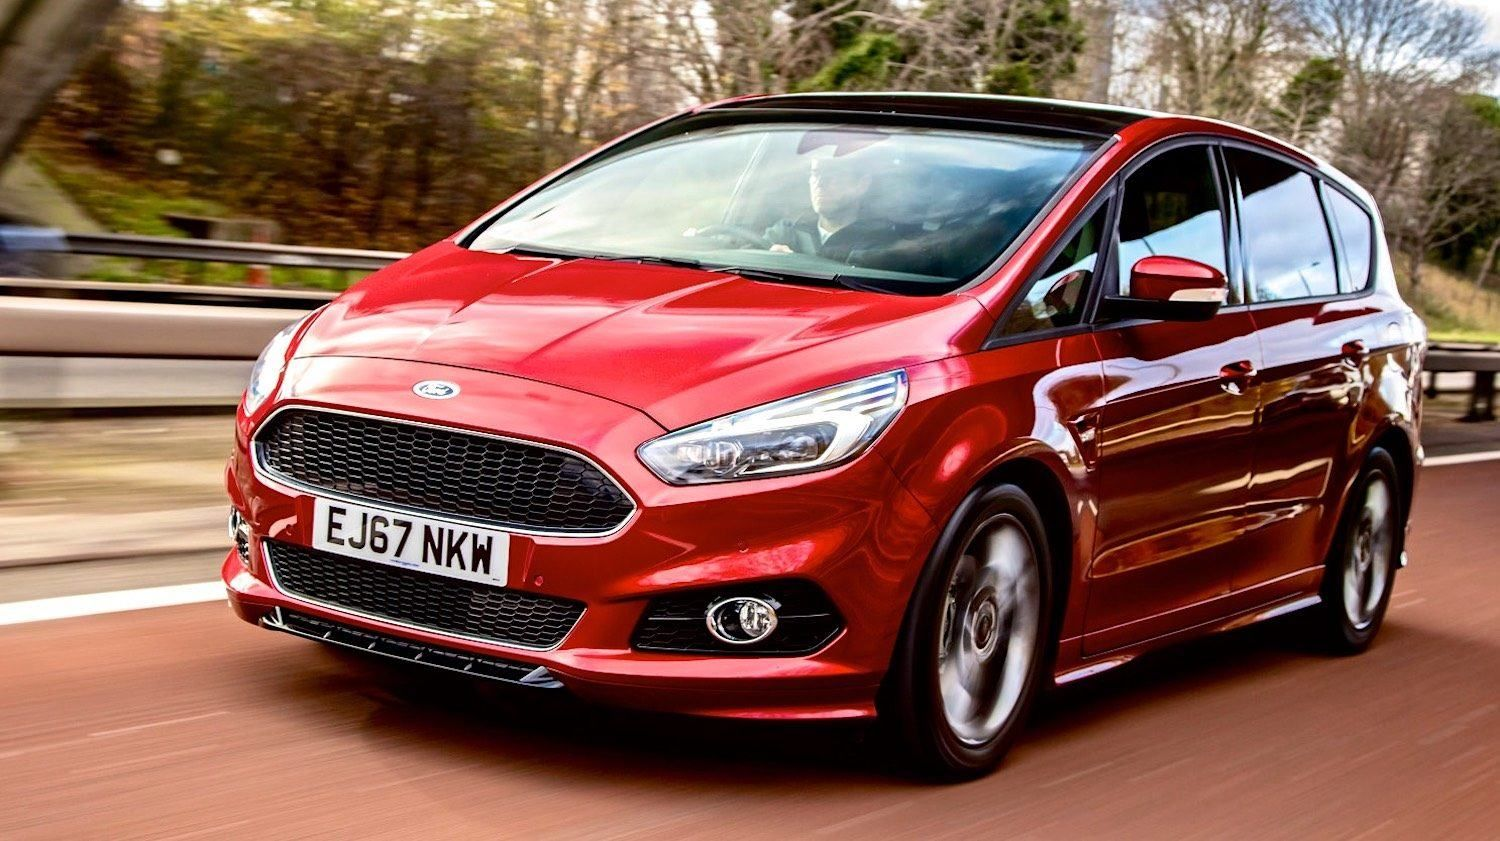 Ford S Max Mpv 2018 Review